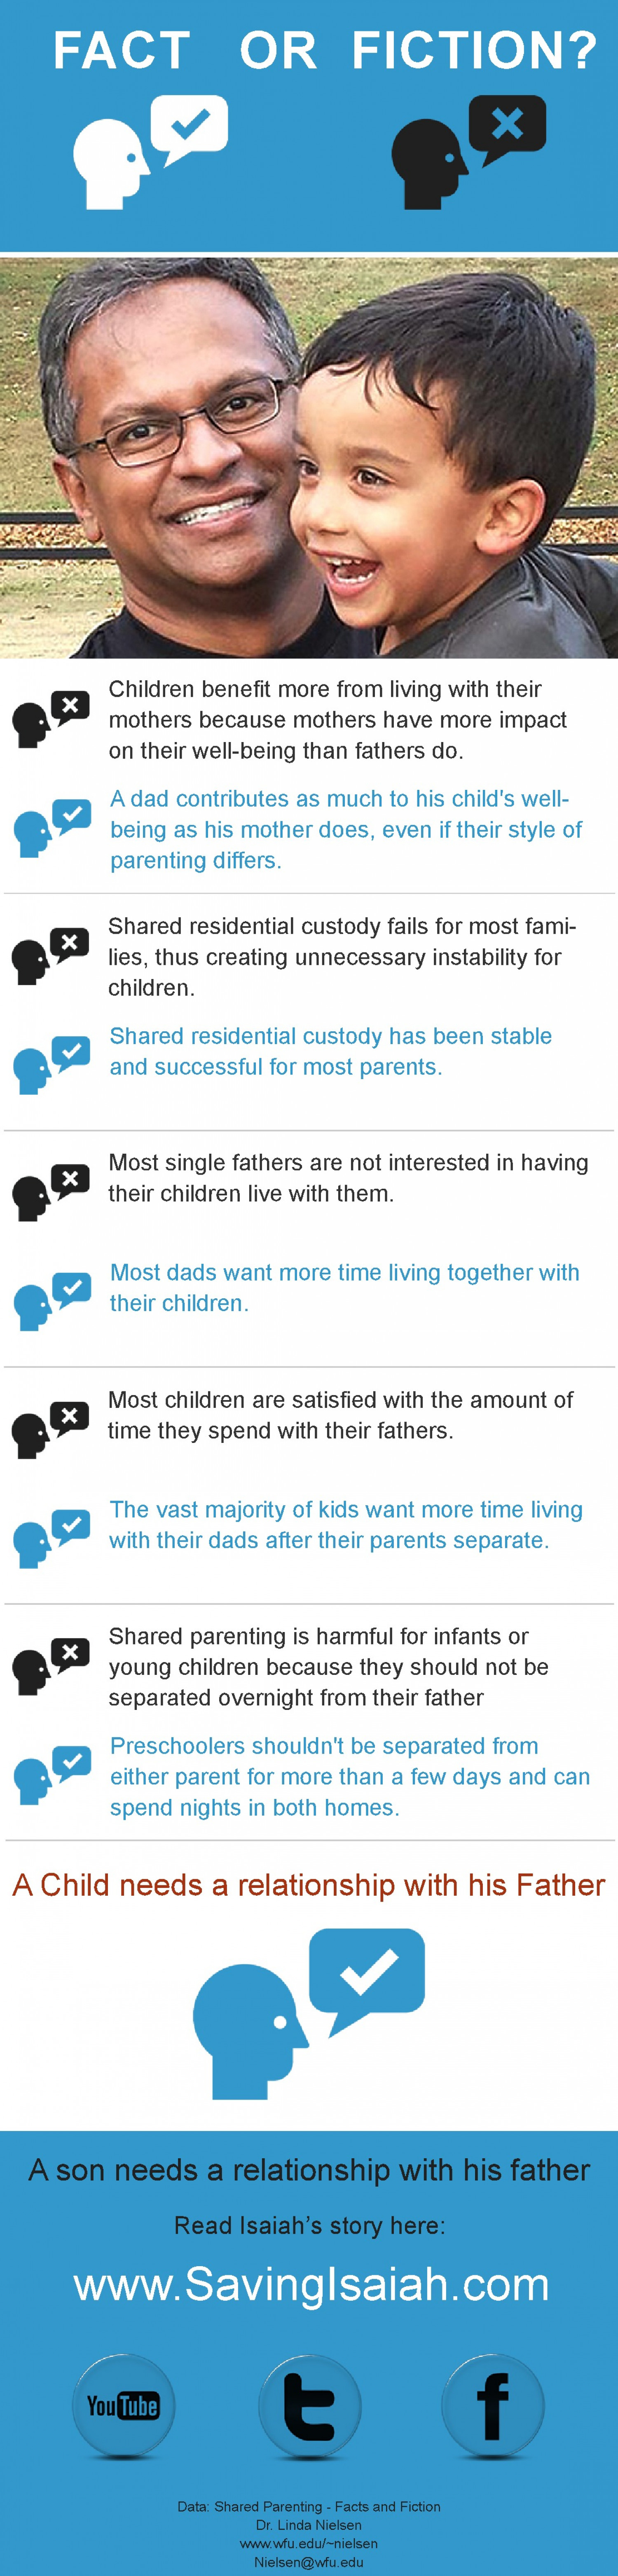 Fact or Fiction: A Child Needs A Relationship With Their Father Infographic